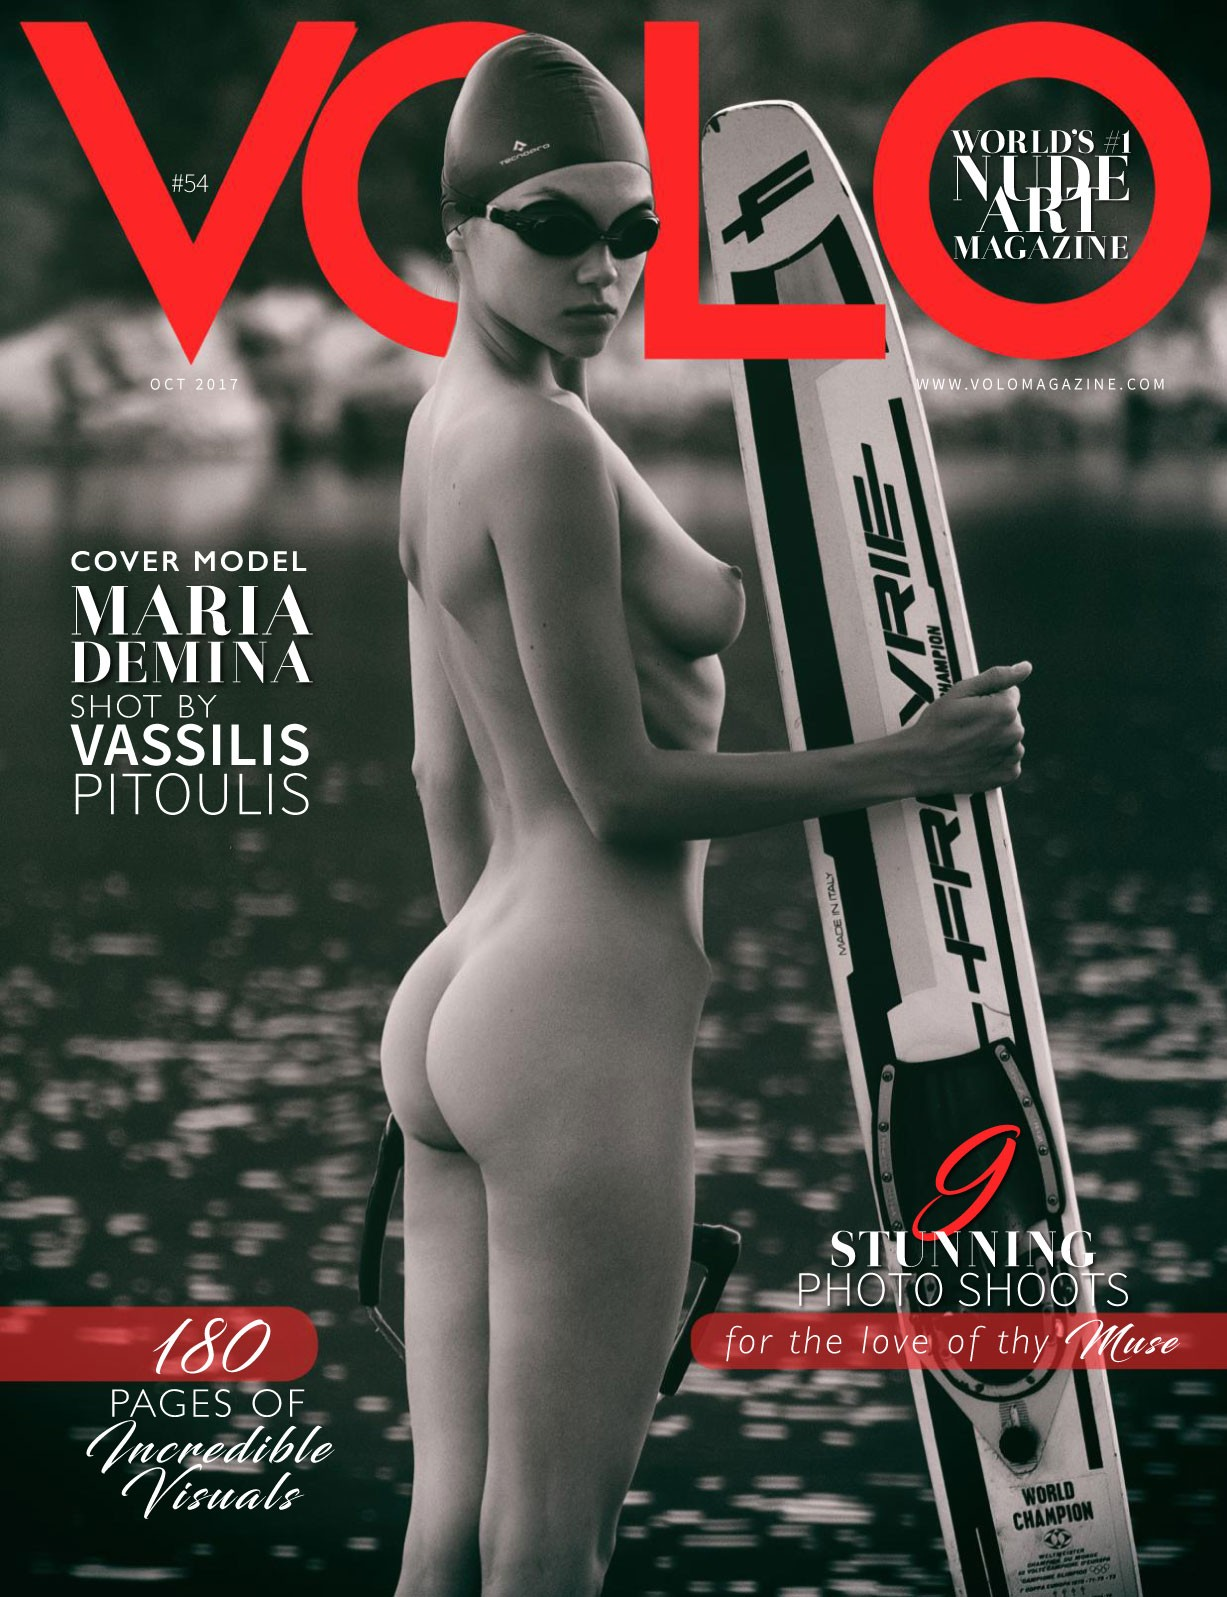 Maria Demina nude by Vassilis Pitoulis - Volo number 54 october 2017